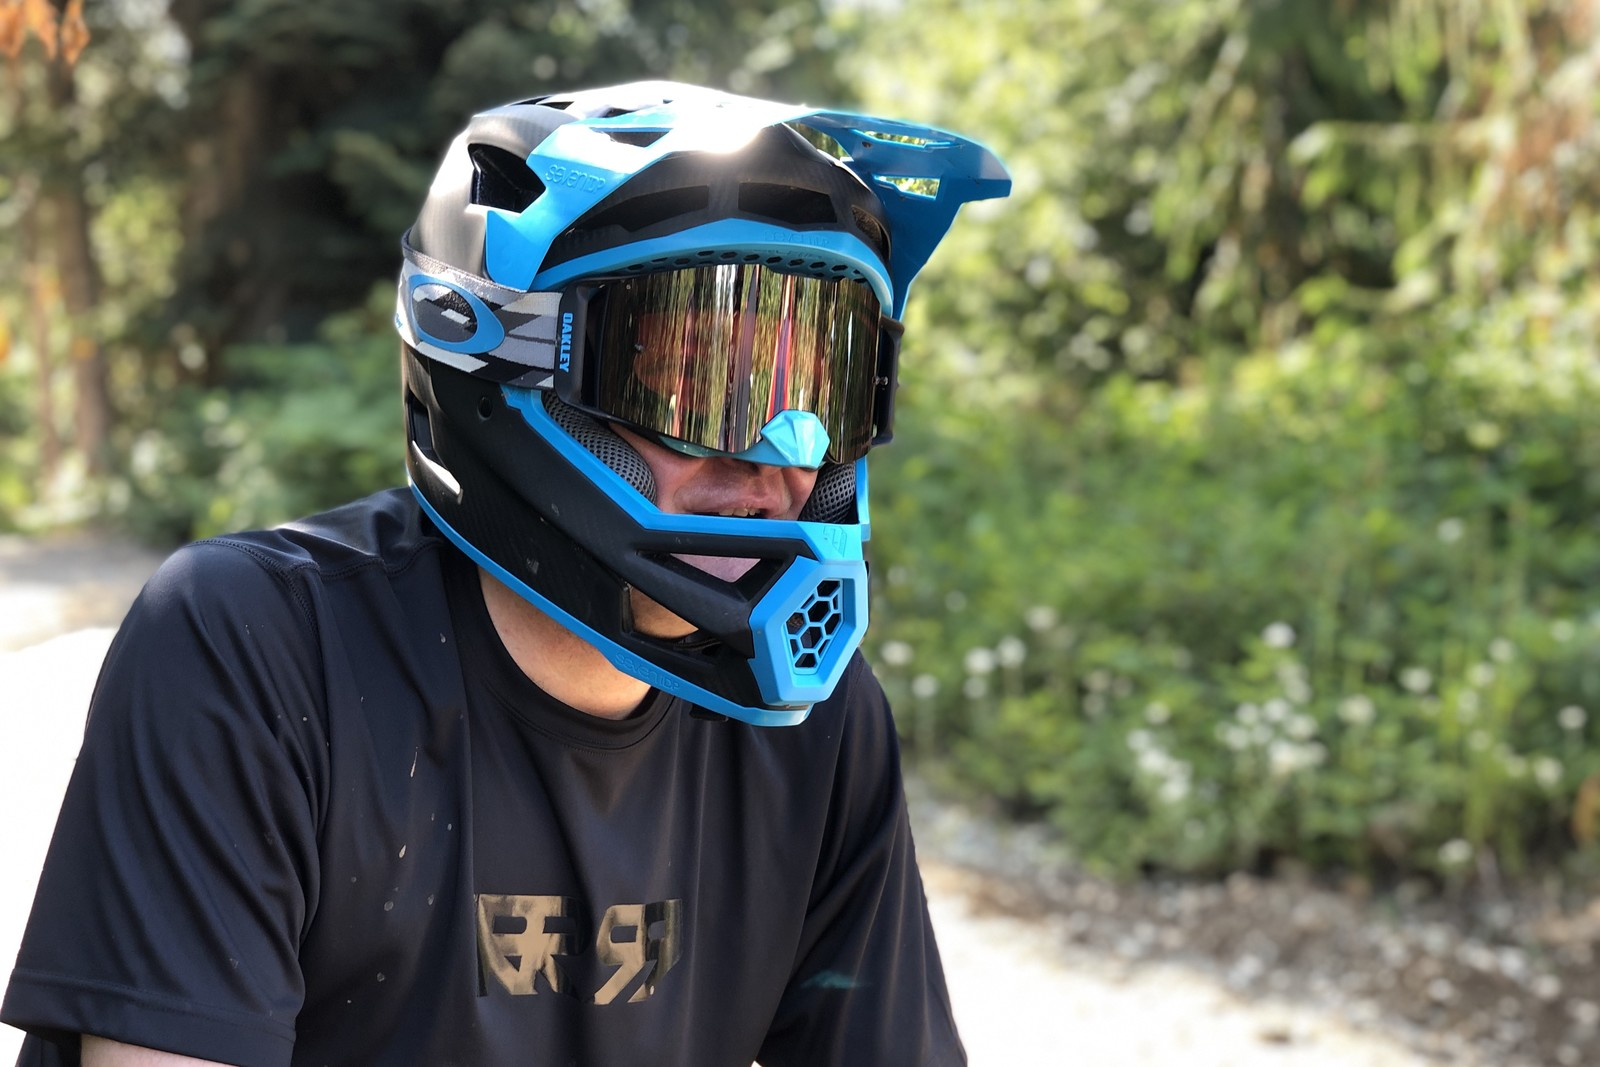 New Lightweight Fullface Helmet from 7 Protection - PIT BITS - 2019 Crankworx Whistler Bikes and Tech - Mountain Biking Pictures - Vital MTB